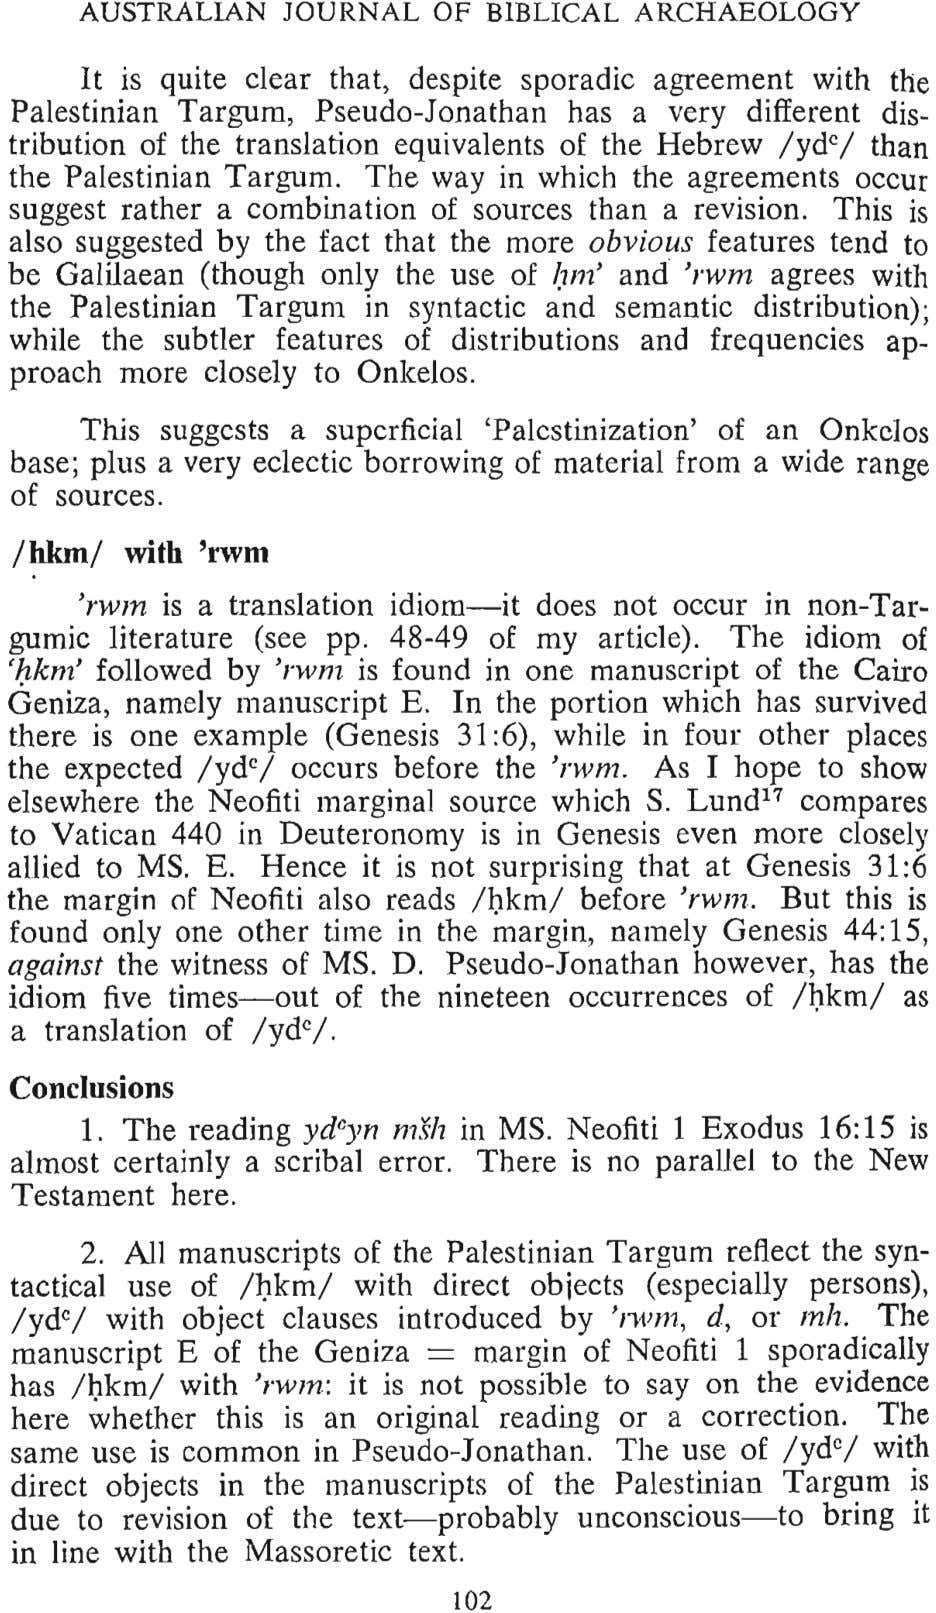 AUSTRALIAN JOURNAL OF BIBLICAL ARCHAEOLOGY It is quite clear that, despite sporadic agreement with the